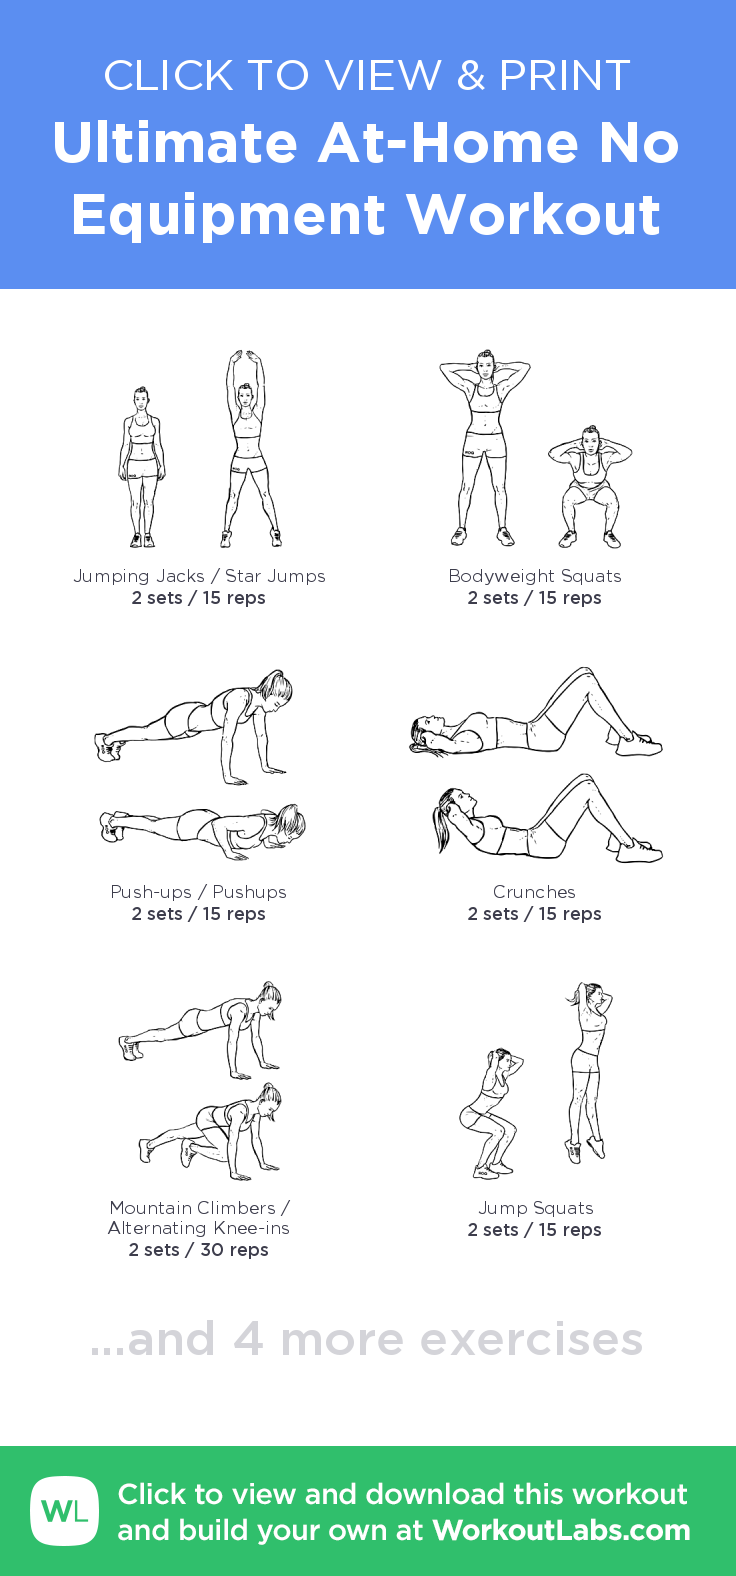 Ultimate AtHome No Equipment Workout click to view and